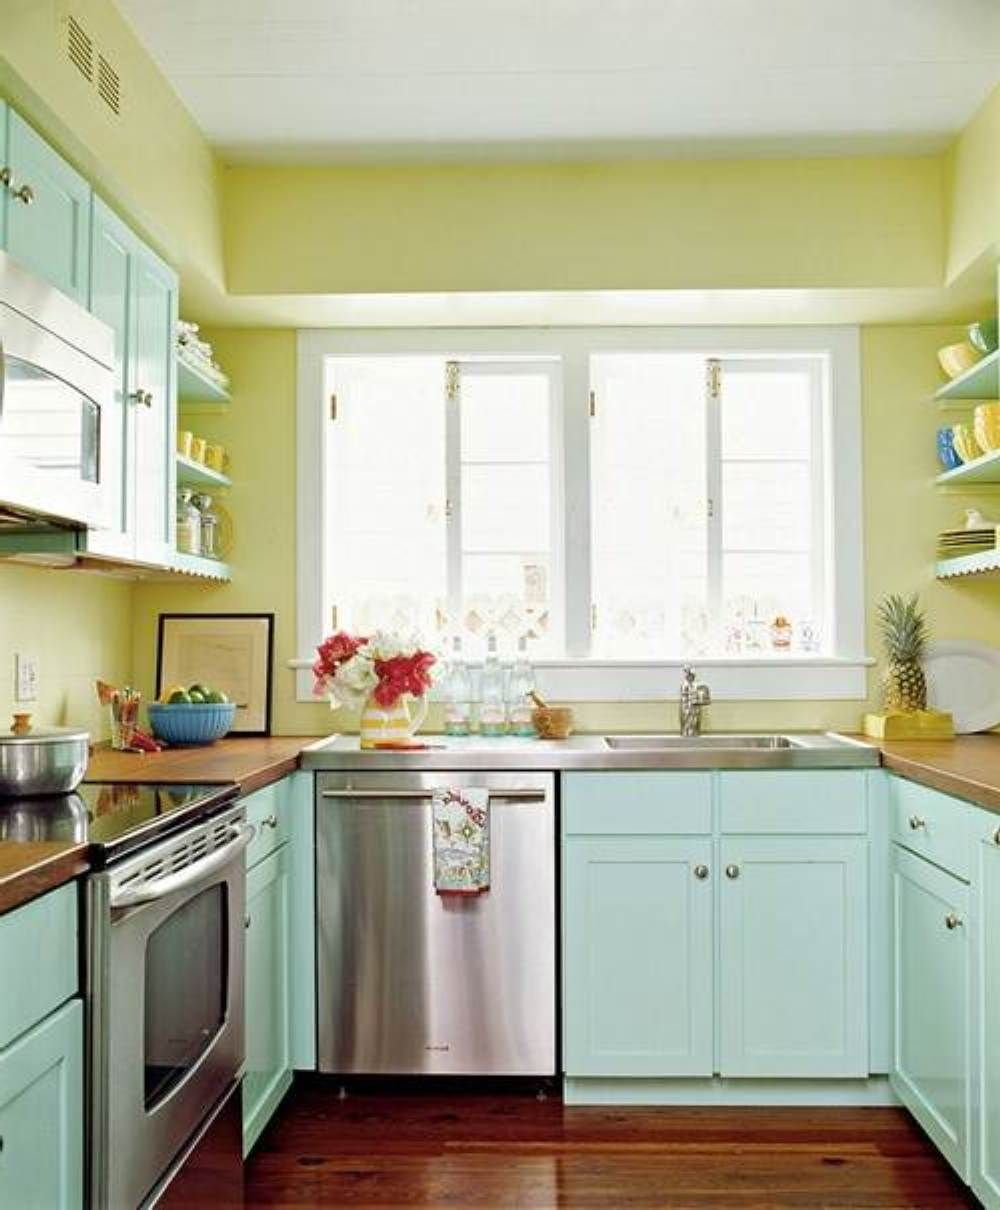 Design For Small Kitchens Small Kitchen Design Ideas Small Kitchens Kitchen Wall Colors